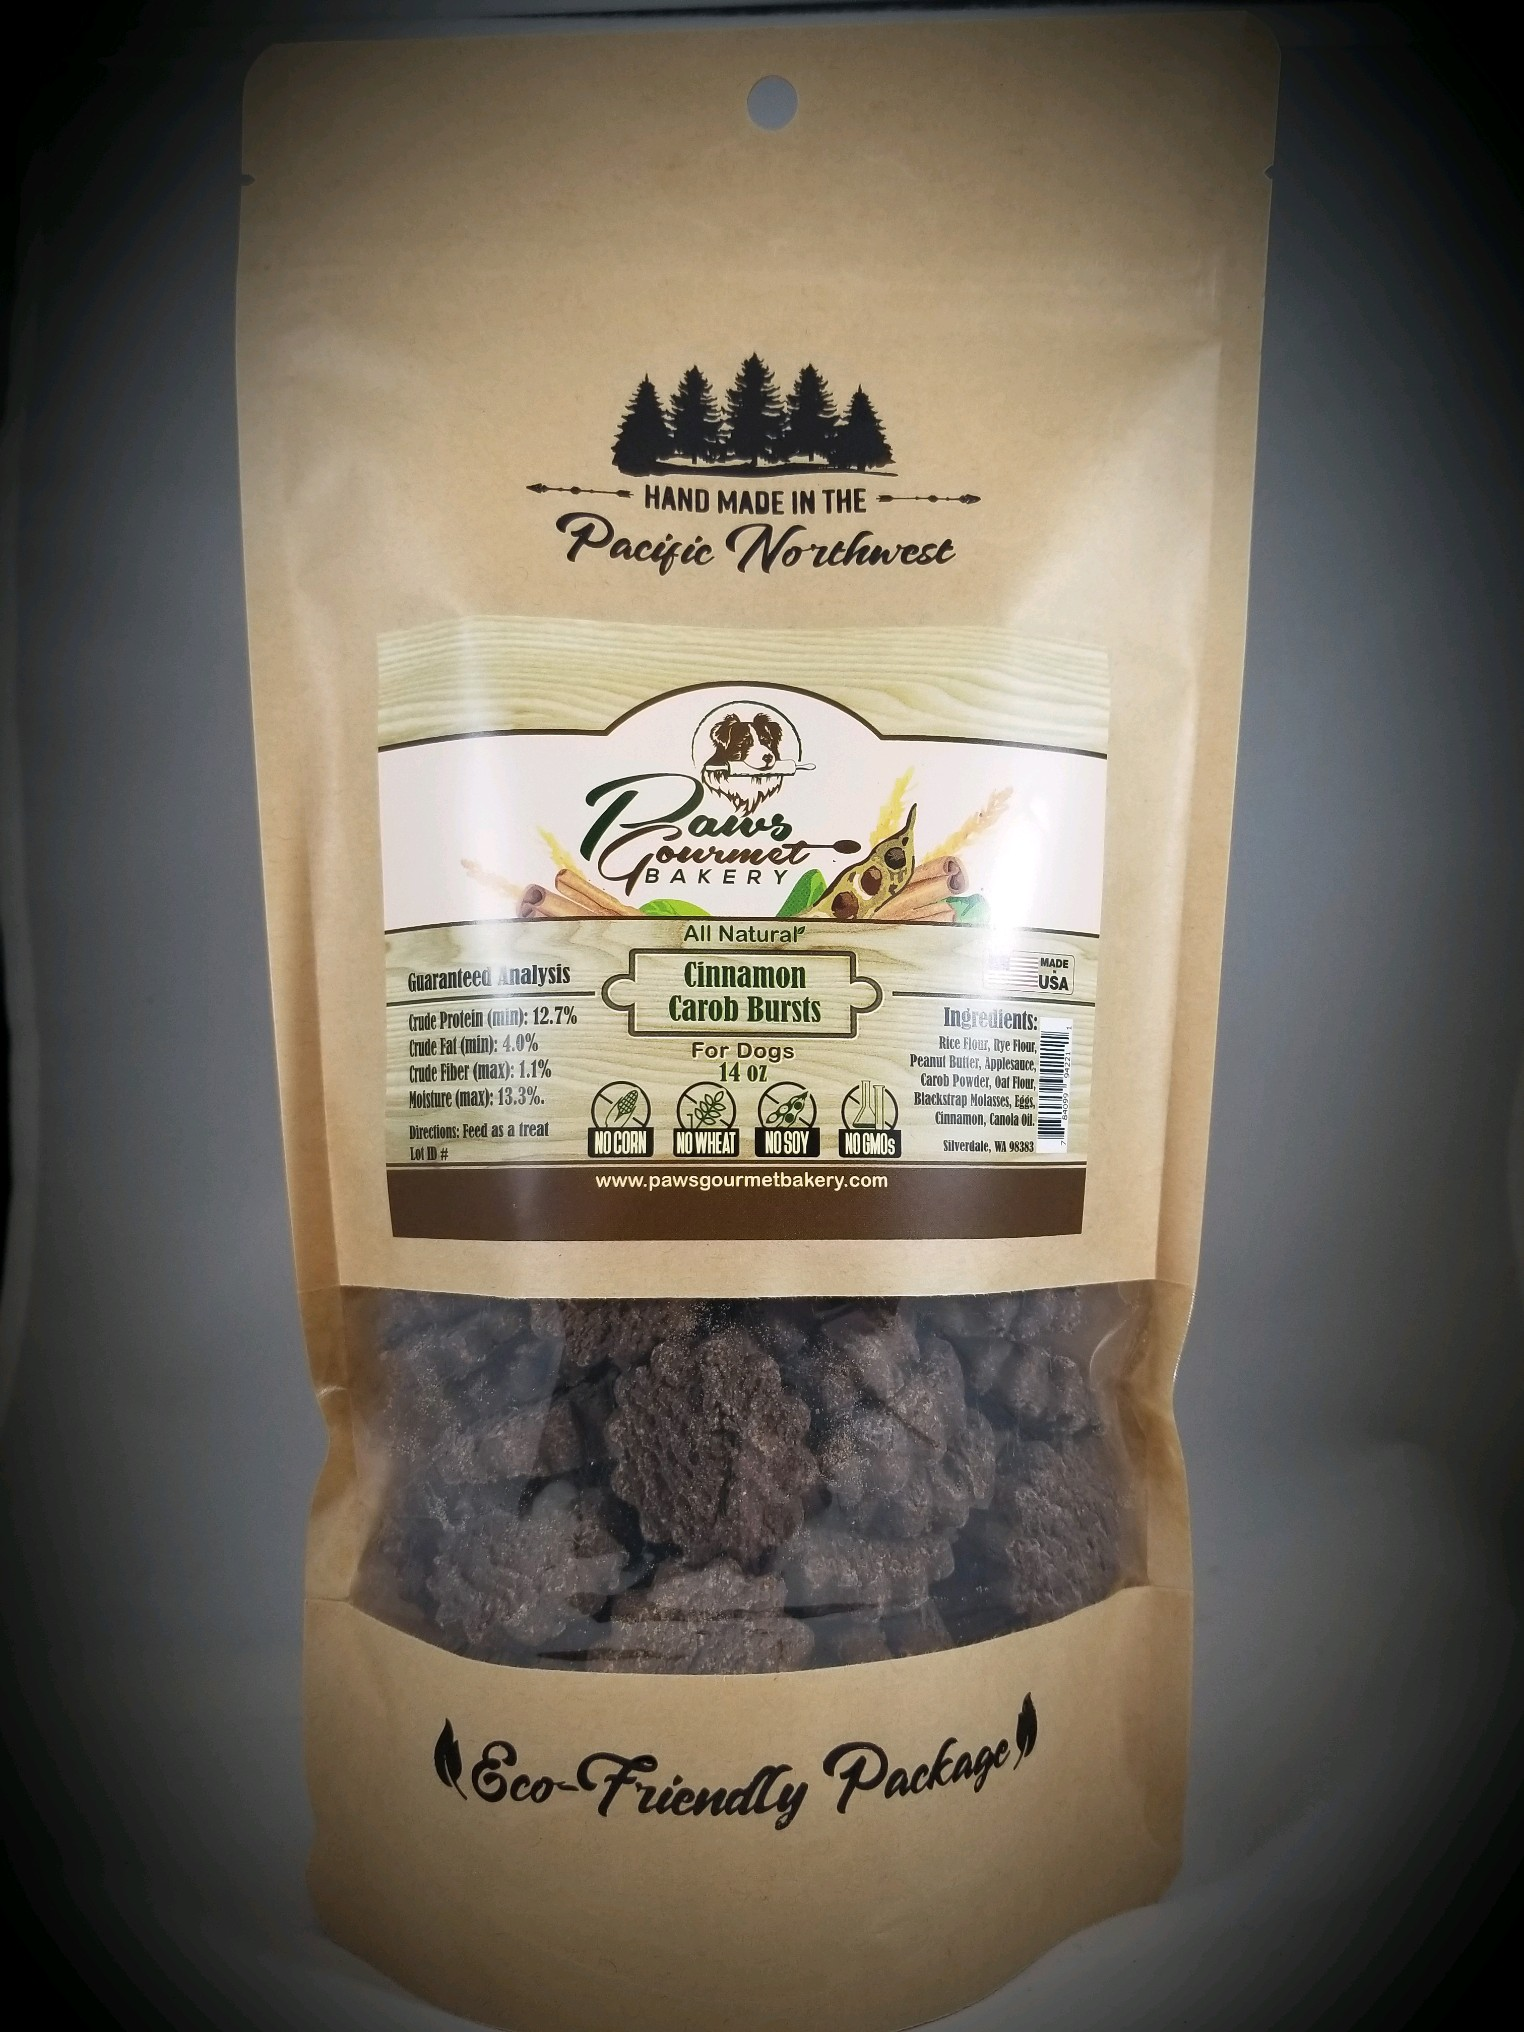 Cinnamon Carob Bursts 14 oz